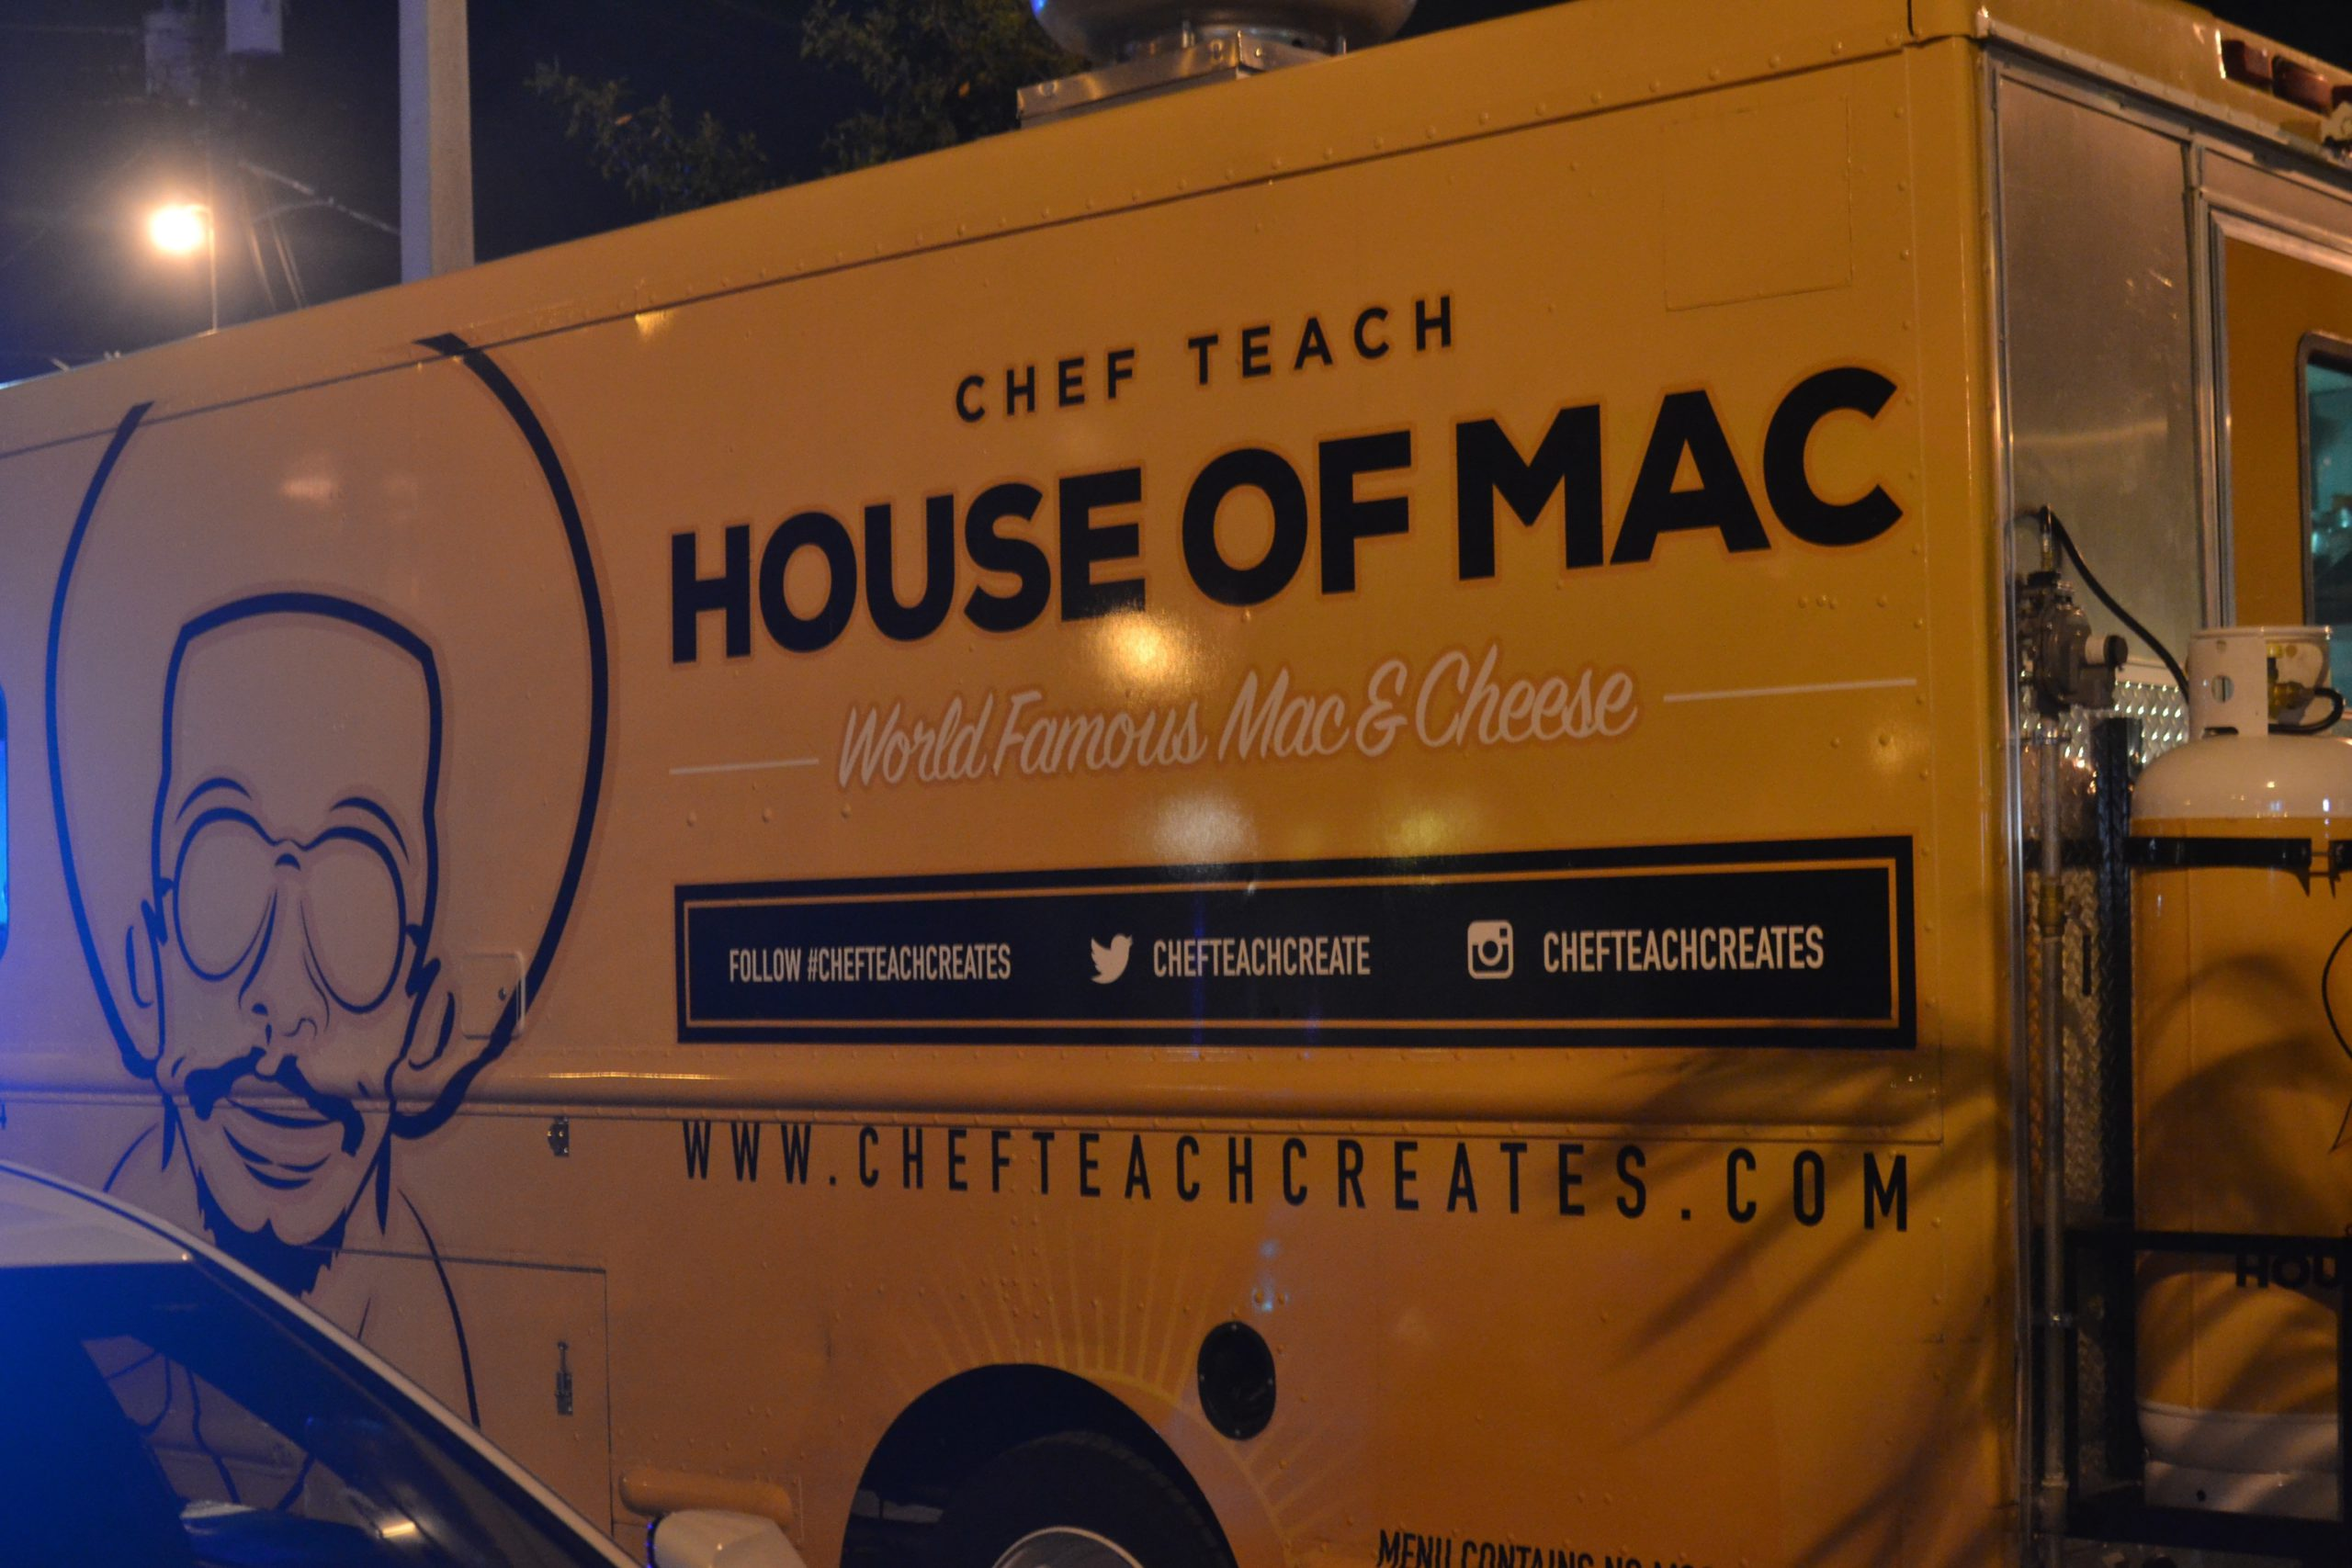 Food Truck House of Mac